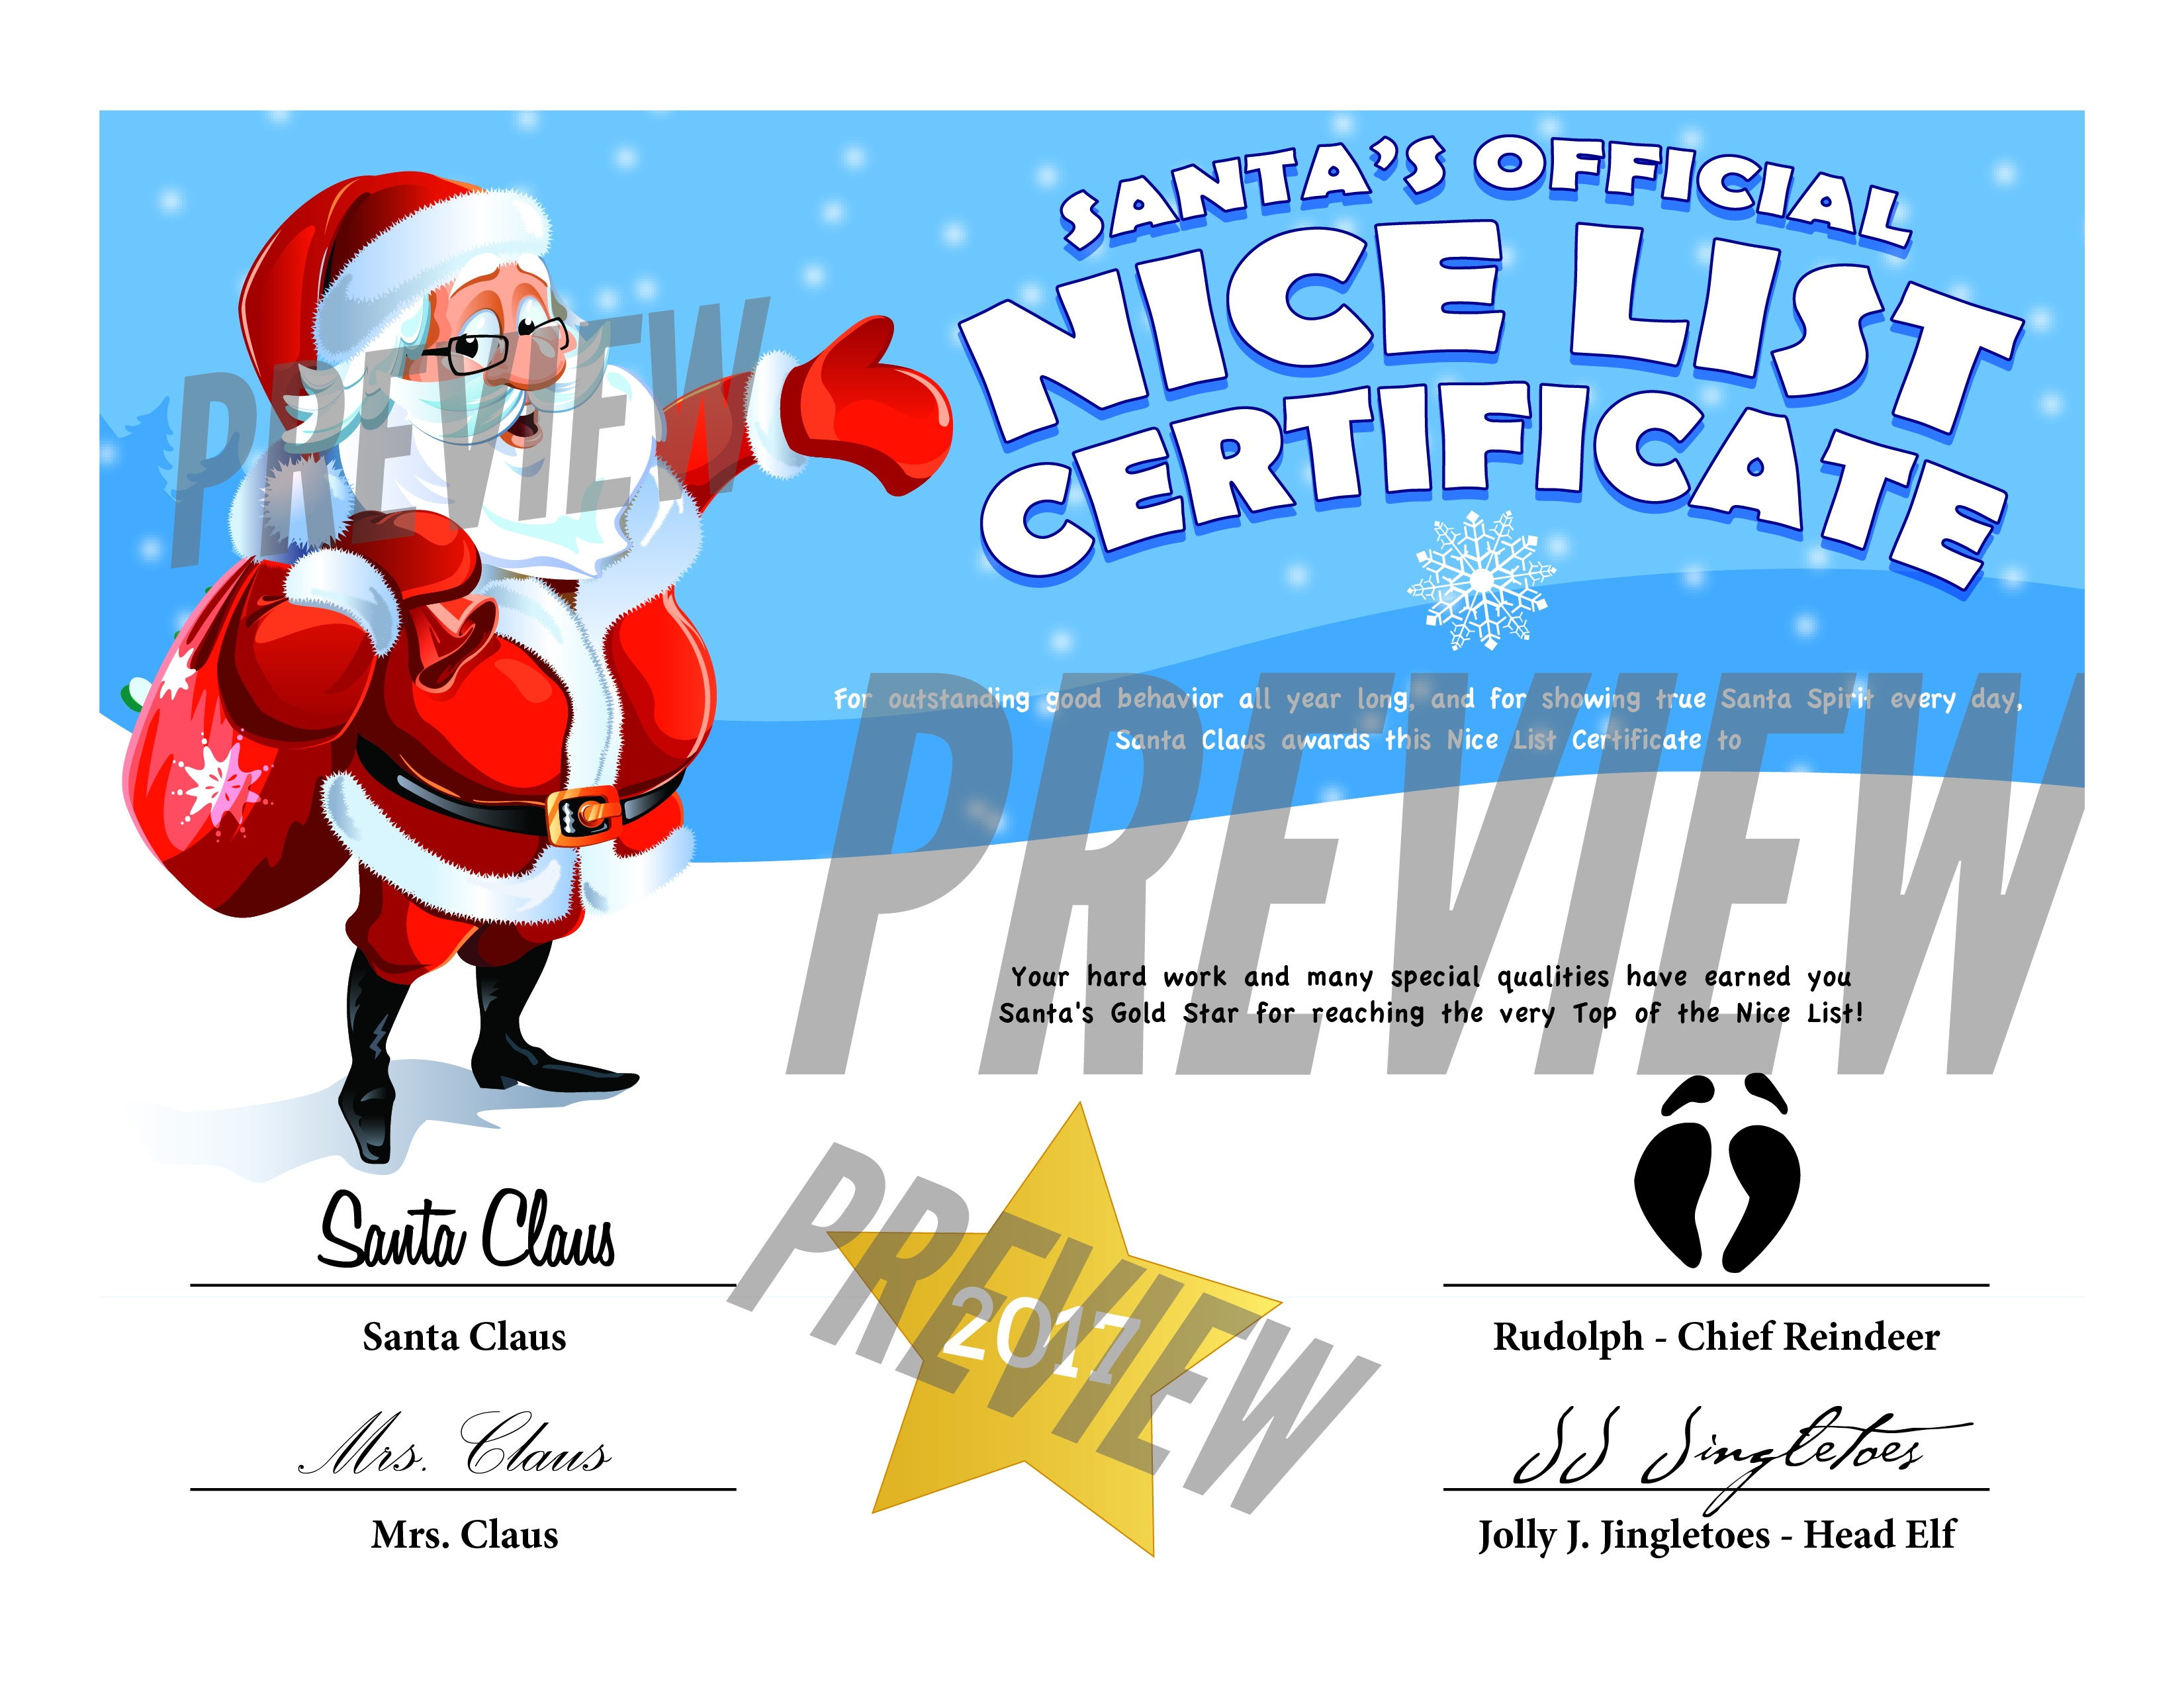 Easy Free Letters From Santa Claus To Children - Free Personalized Printable Letters From Santa Claus